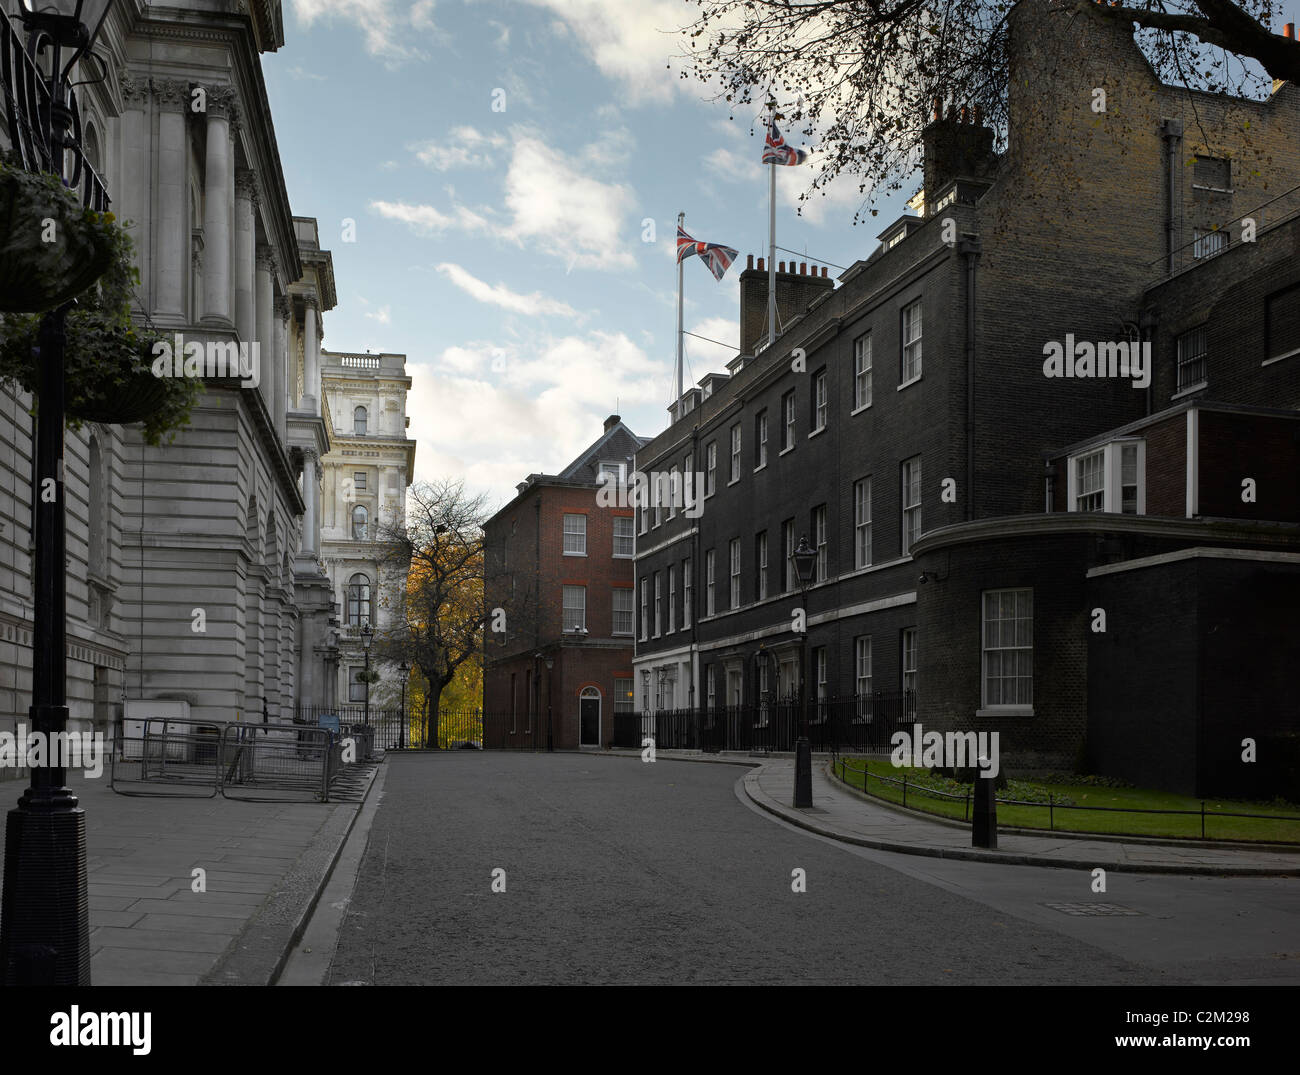 Downing Street, Westminster, London. - Stock Image